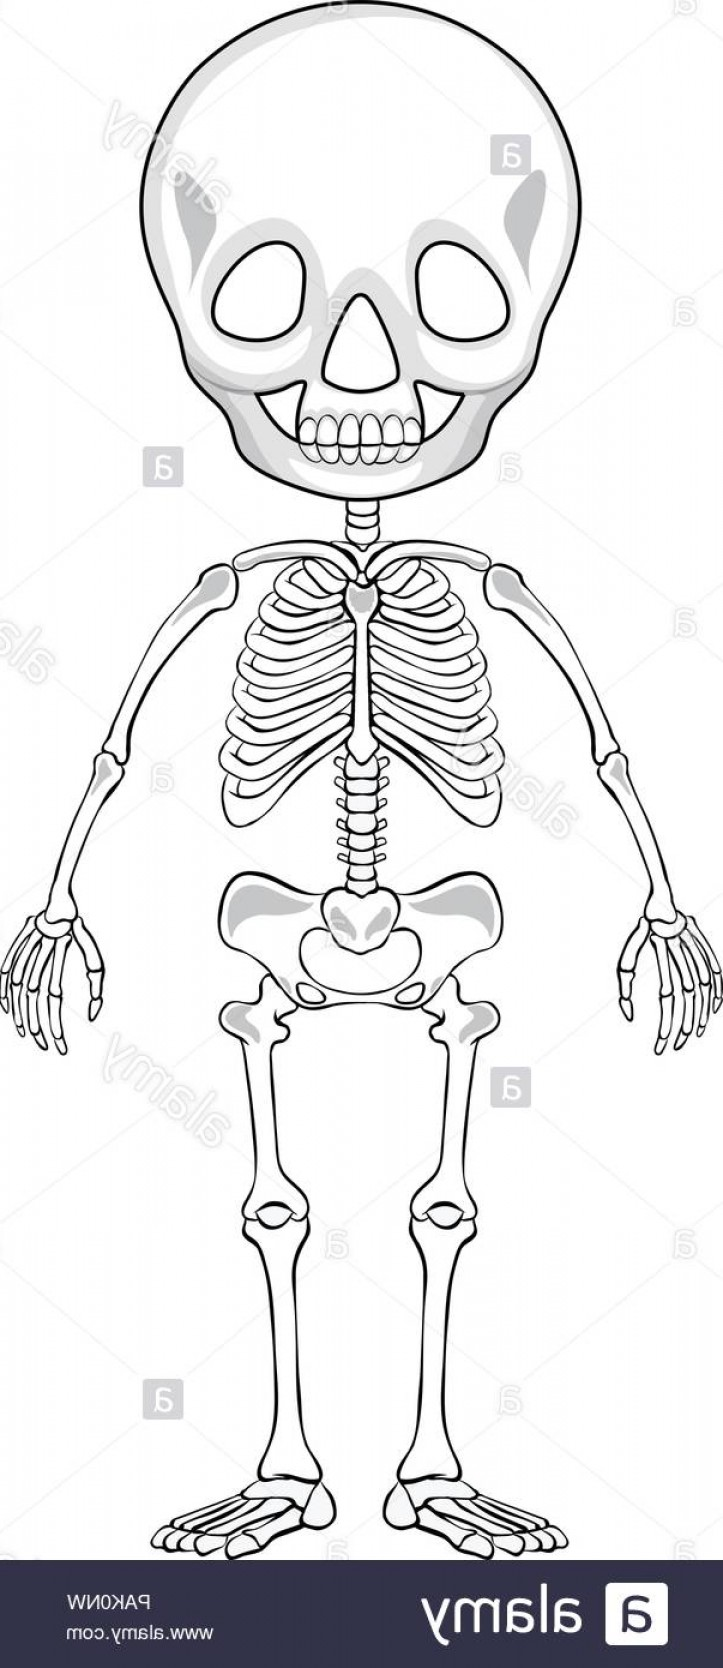 Line Art Human Body Skeleton Labeled Bones Of The Vector: Outline Drawing Of A Human Skeleton Illustration Image